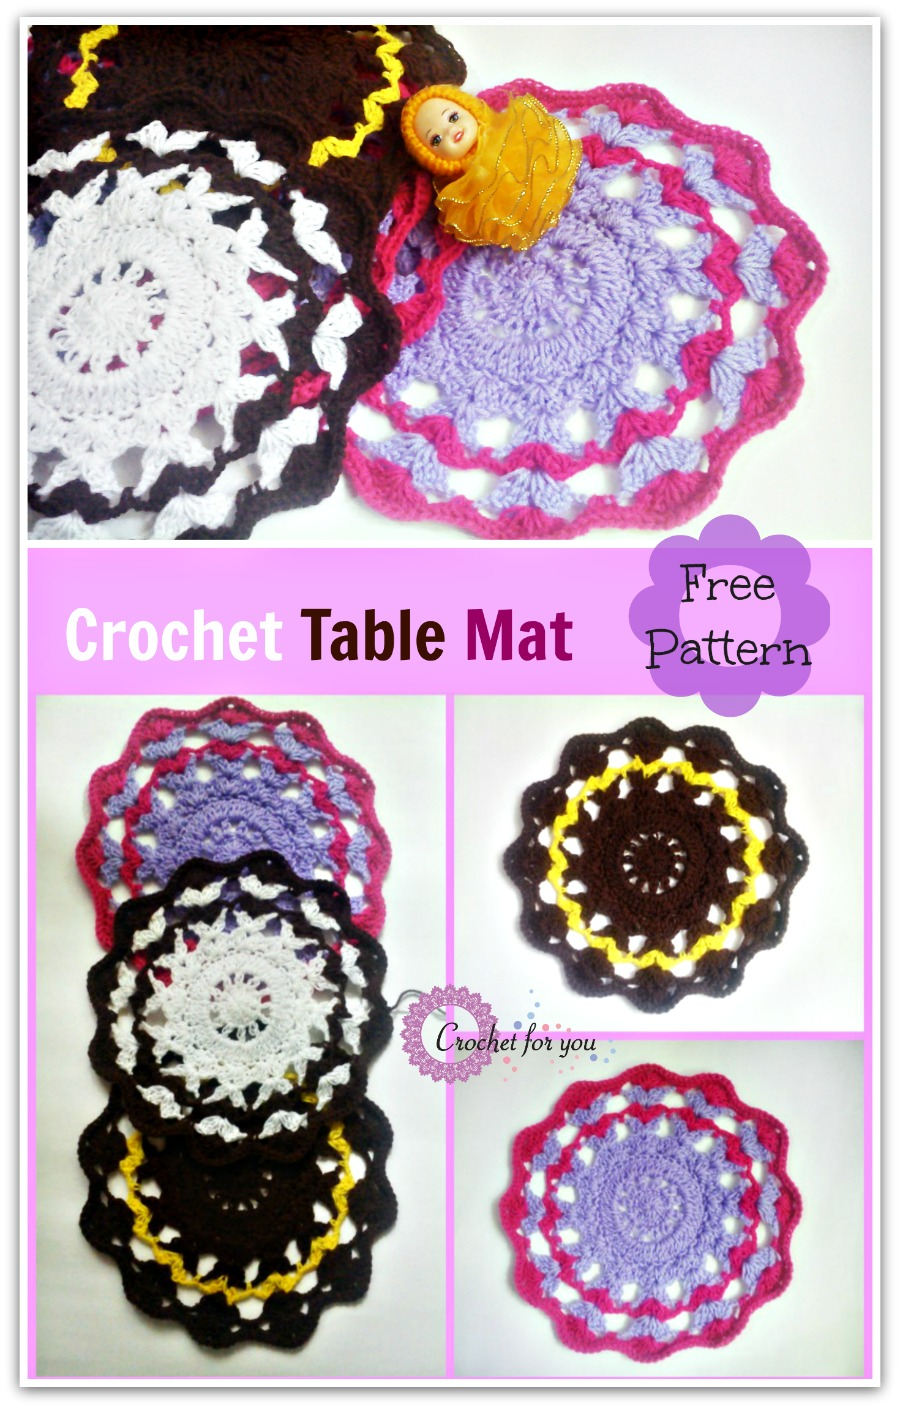 Crochet Table Mat - free pattern